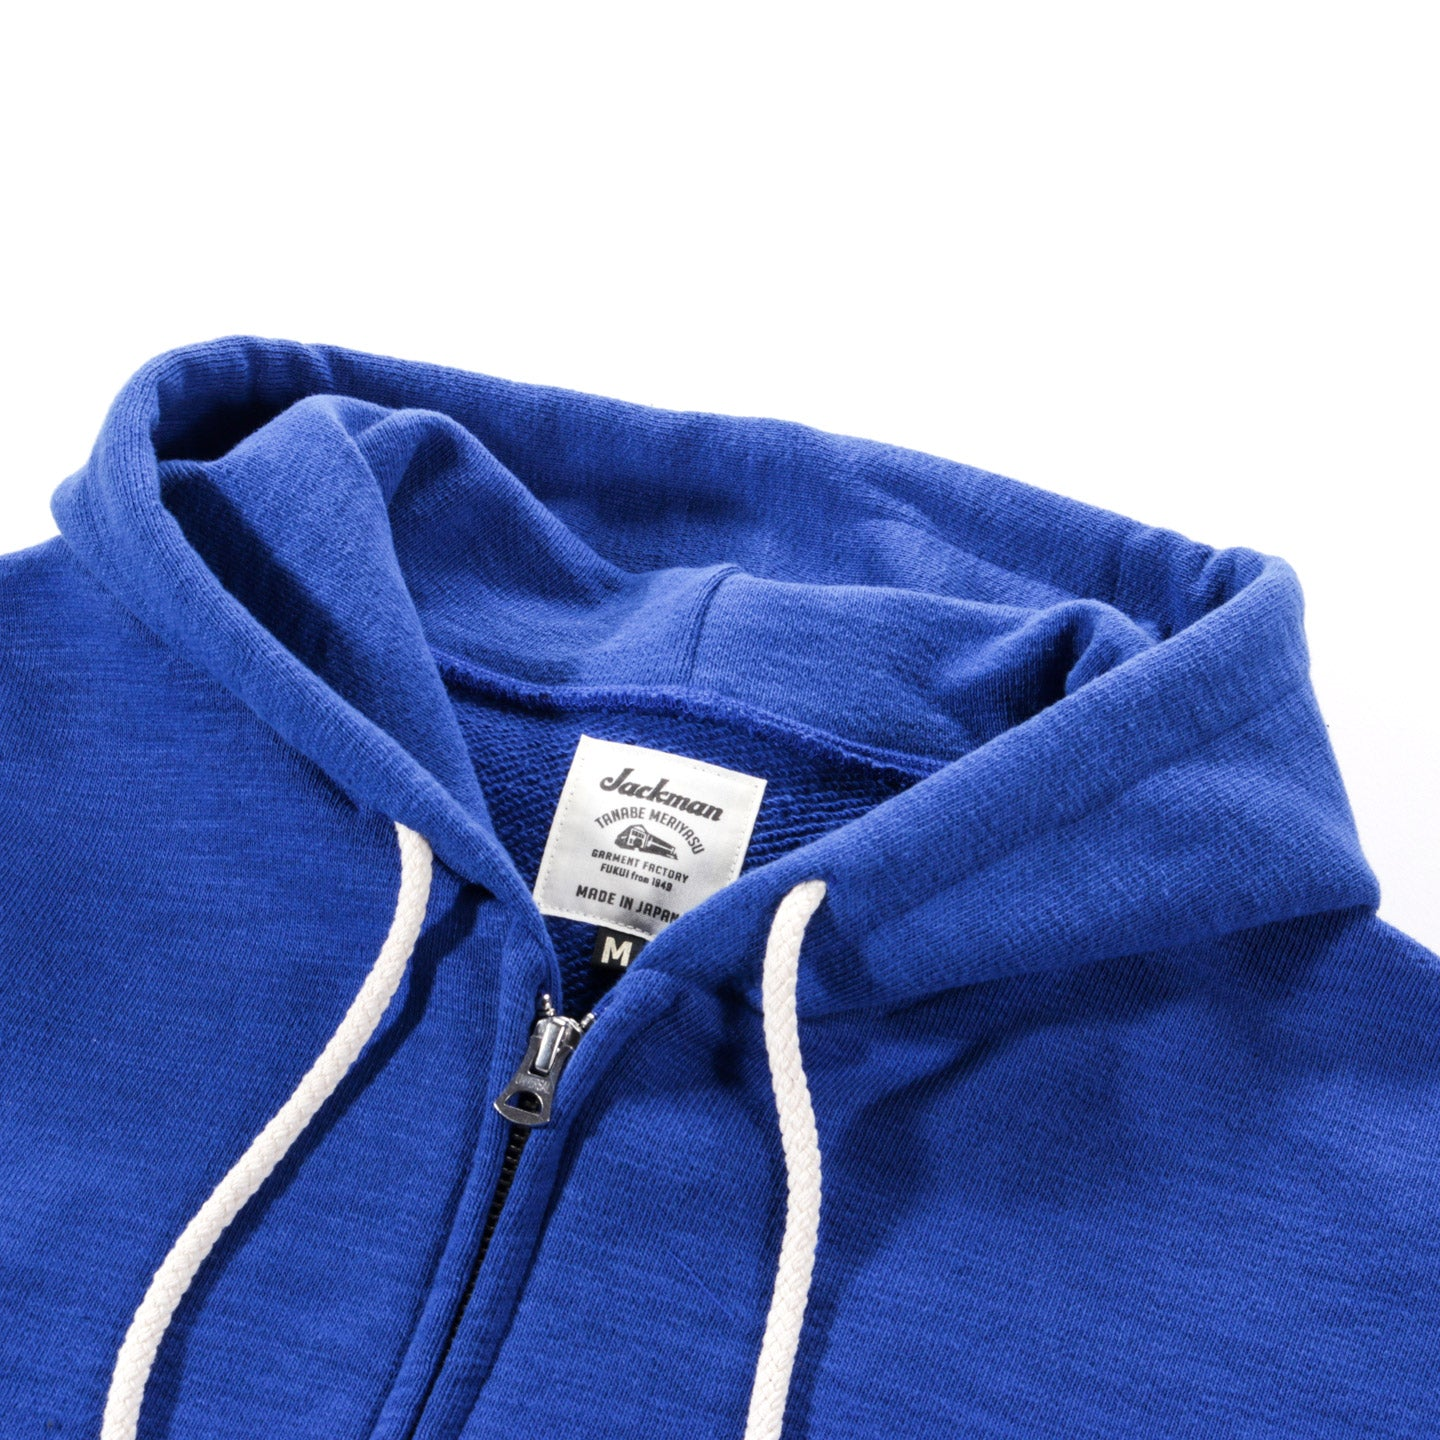 JACKMAN GG SWEAT PARKA ROYAL BLUE